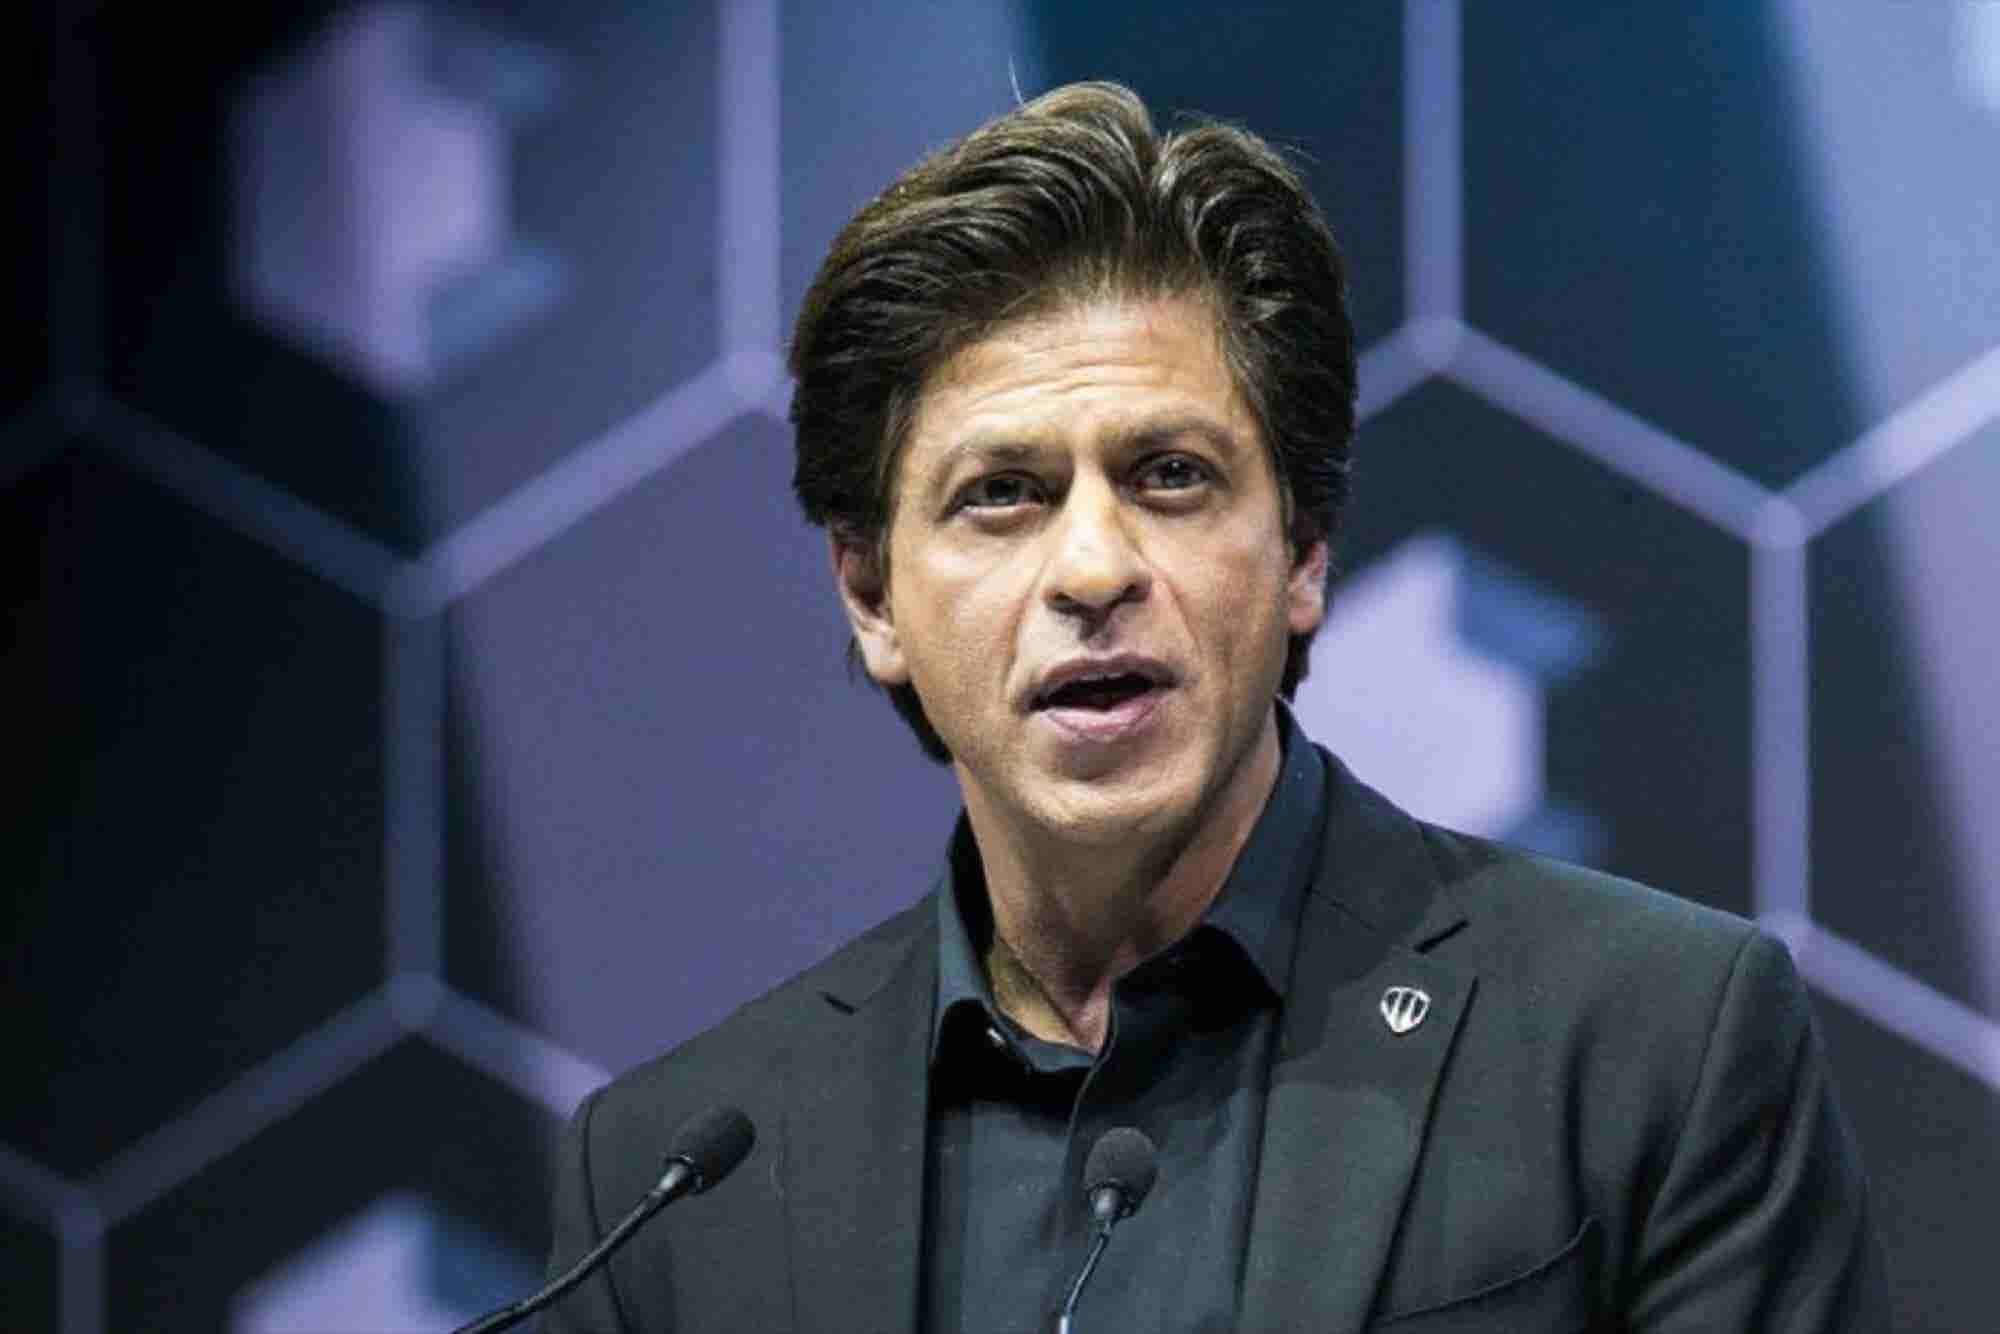 Shah Rukh Khan Advocates Women's Right to Assert Choices in His Davos...